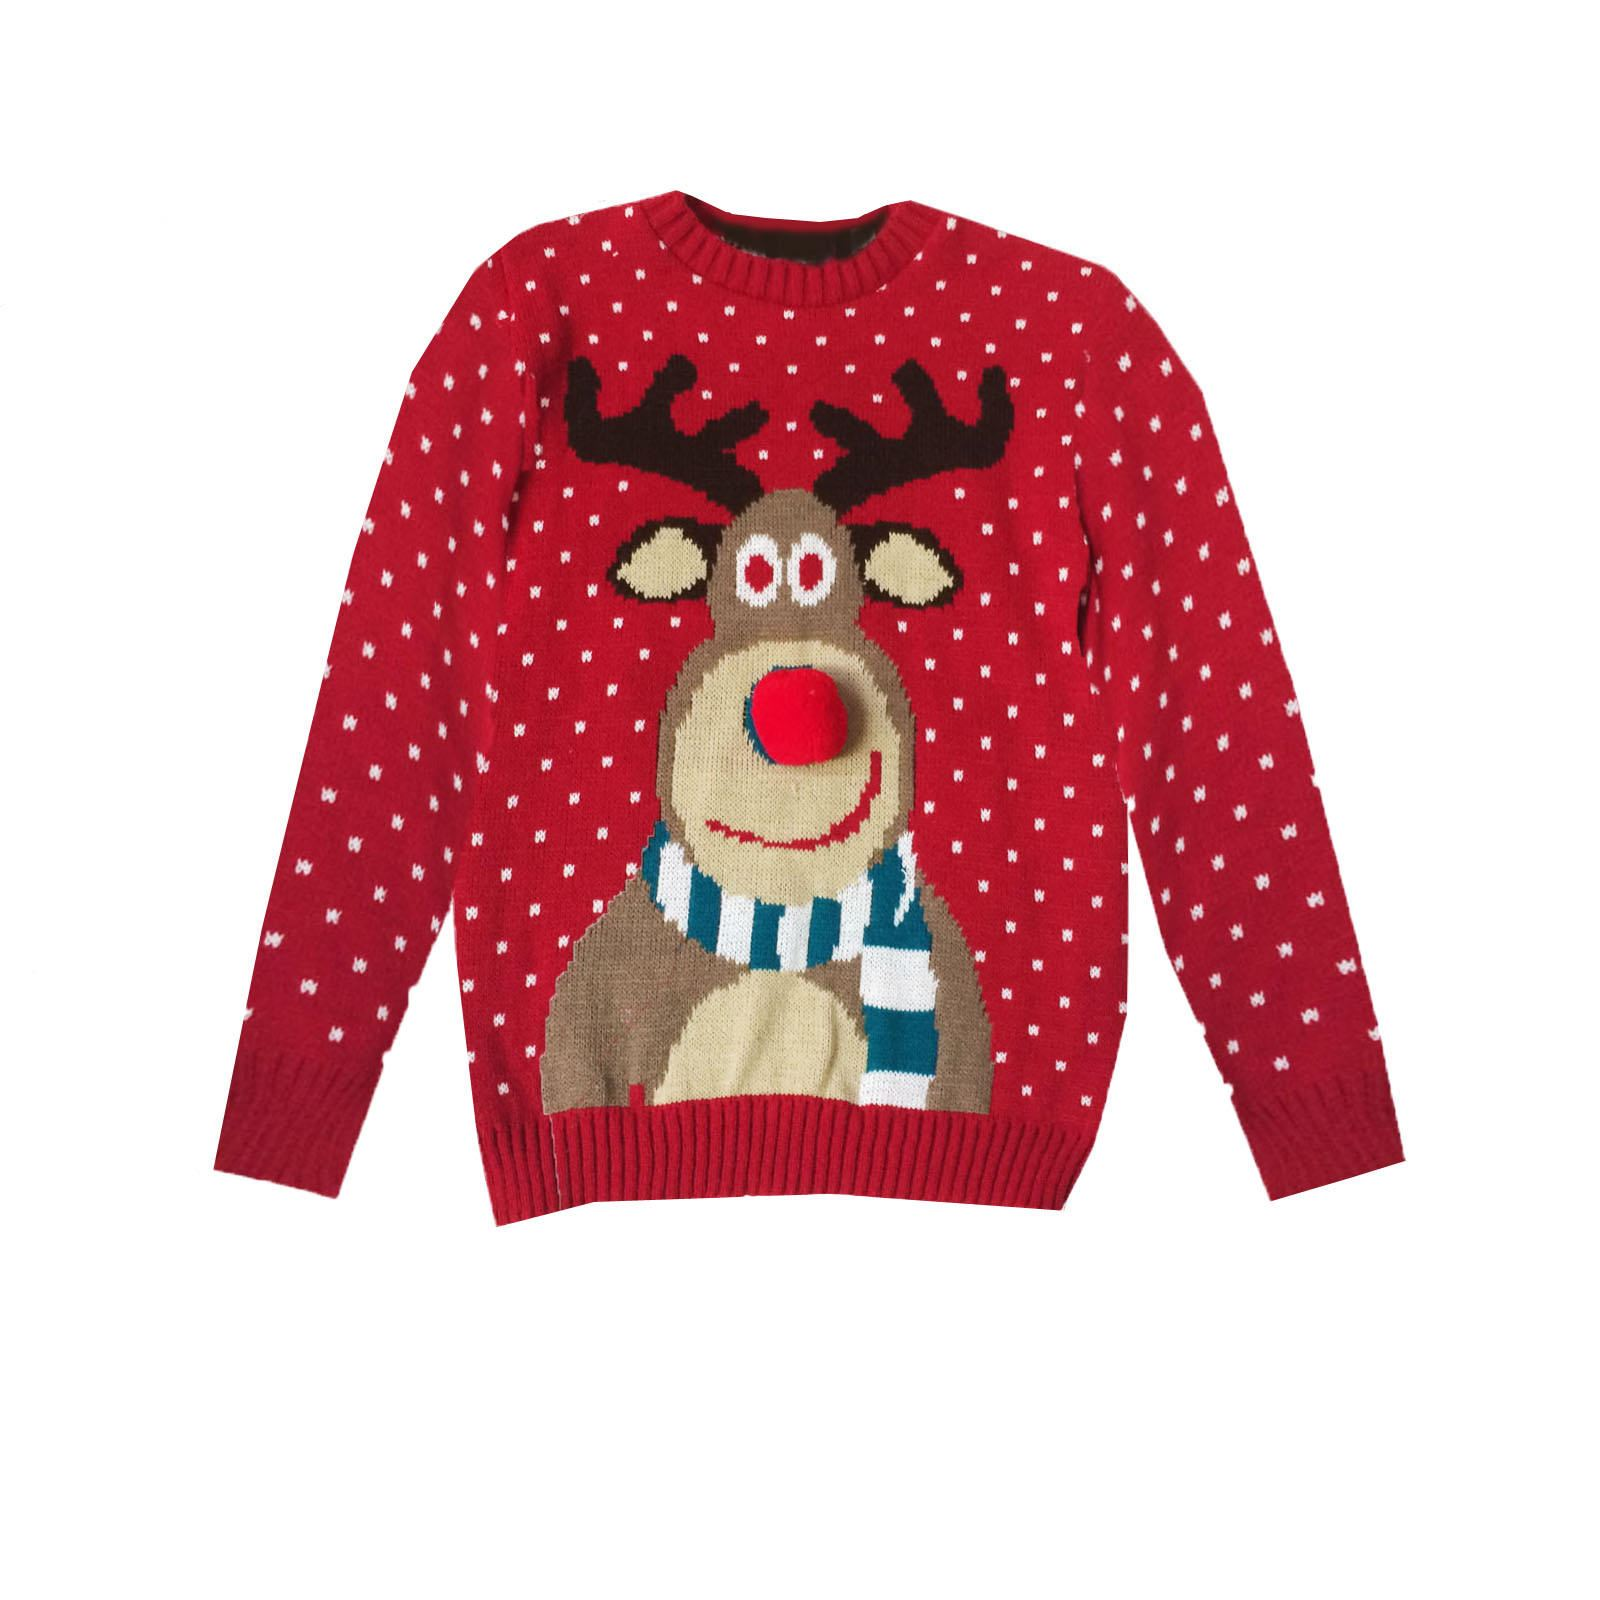 Kids Christmas Jumpers Celebrate Christmas. Pink Reindeer Christmas Jumper £